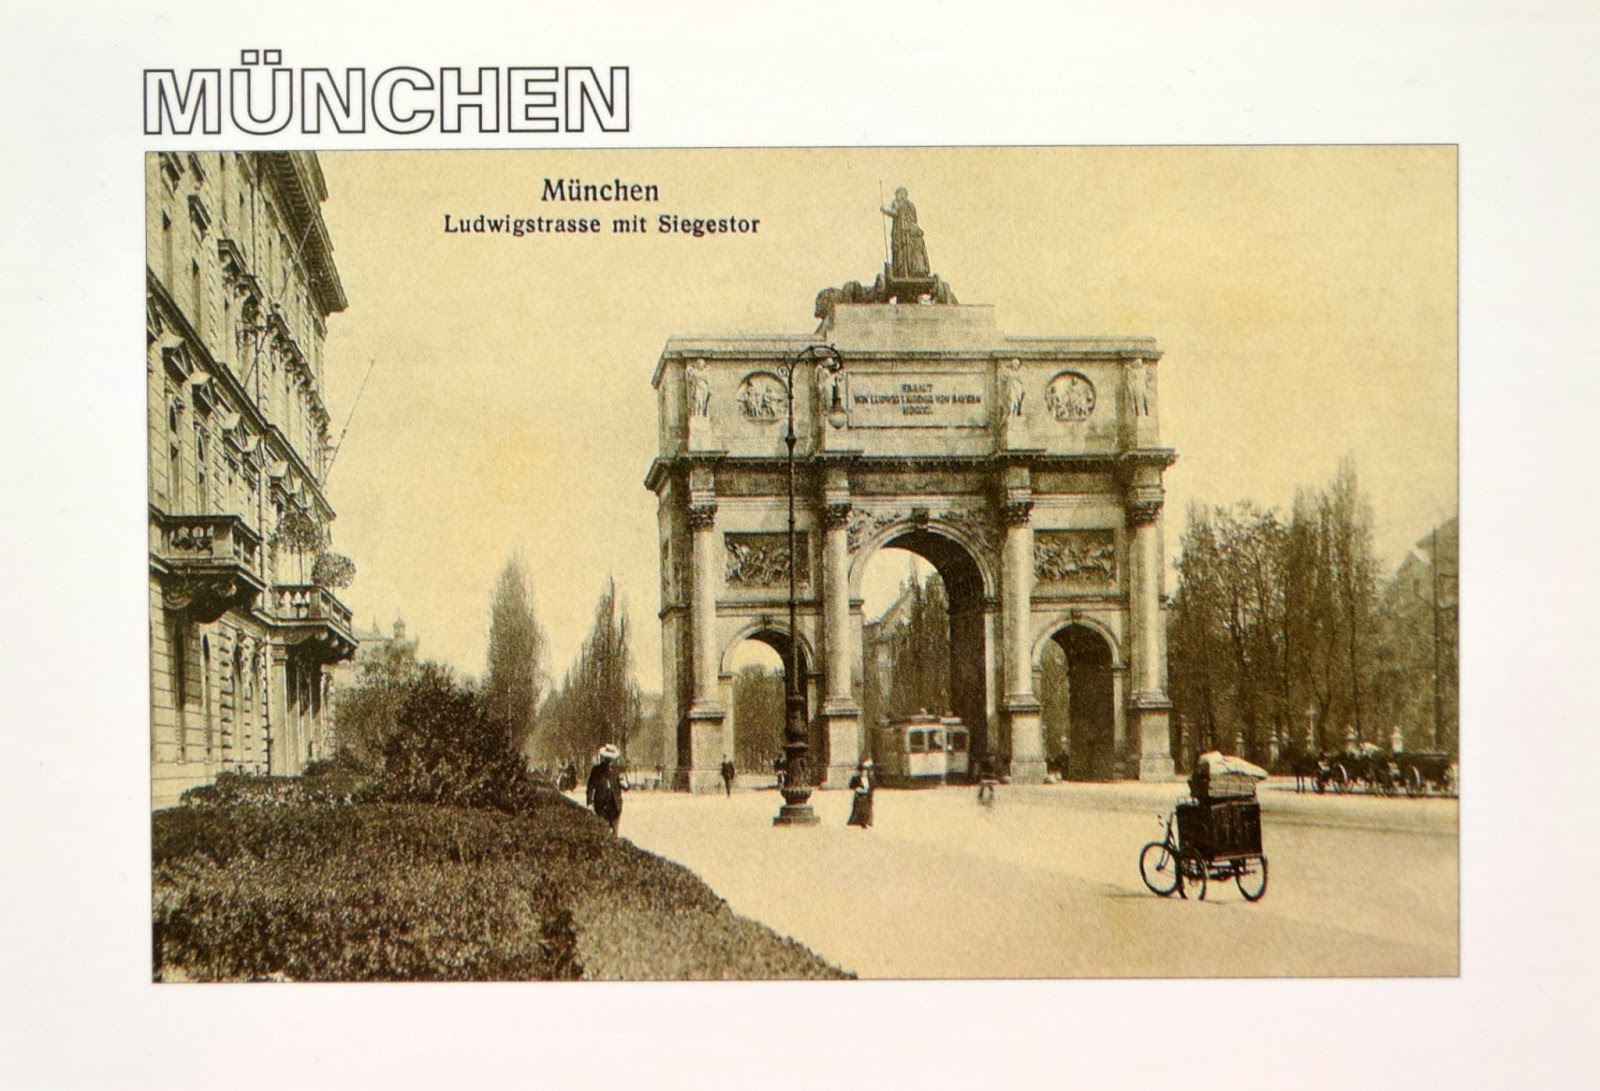 The history of the city Munich | Memories That Remain - Postcrossing Blog